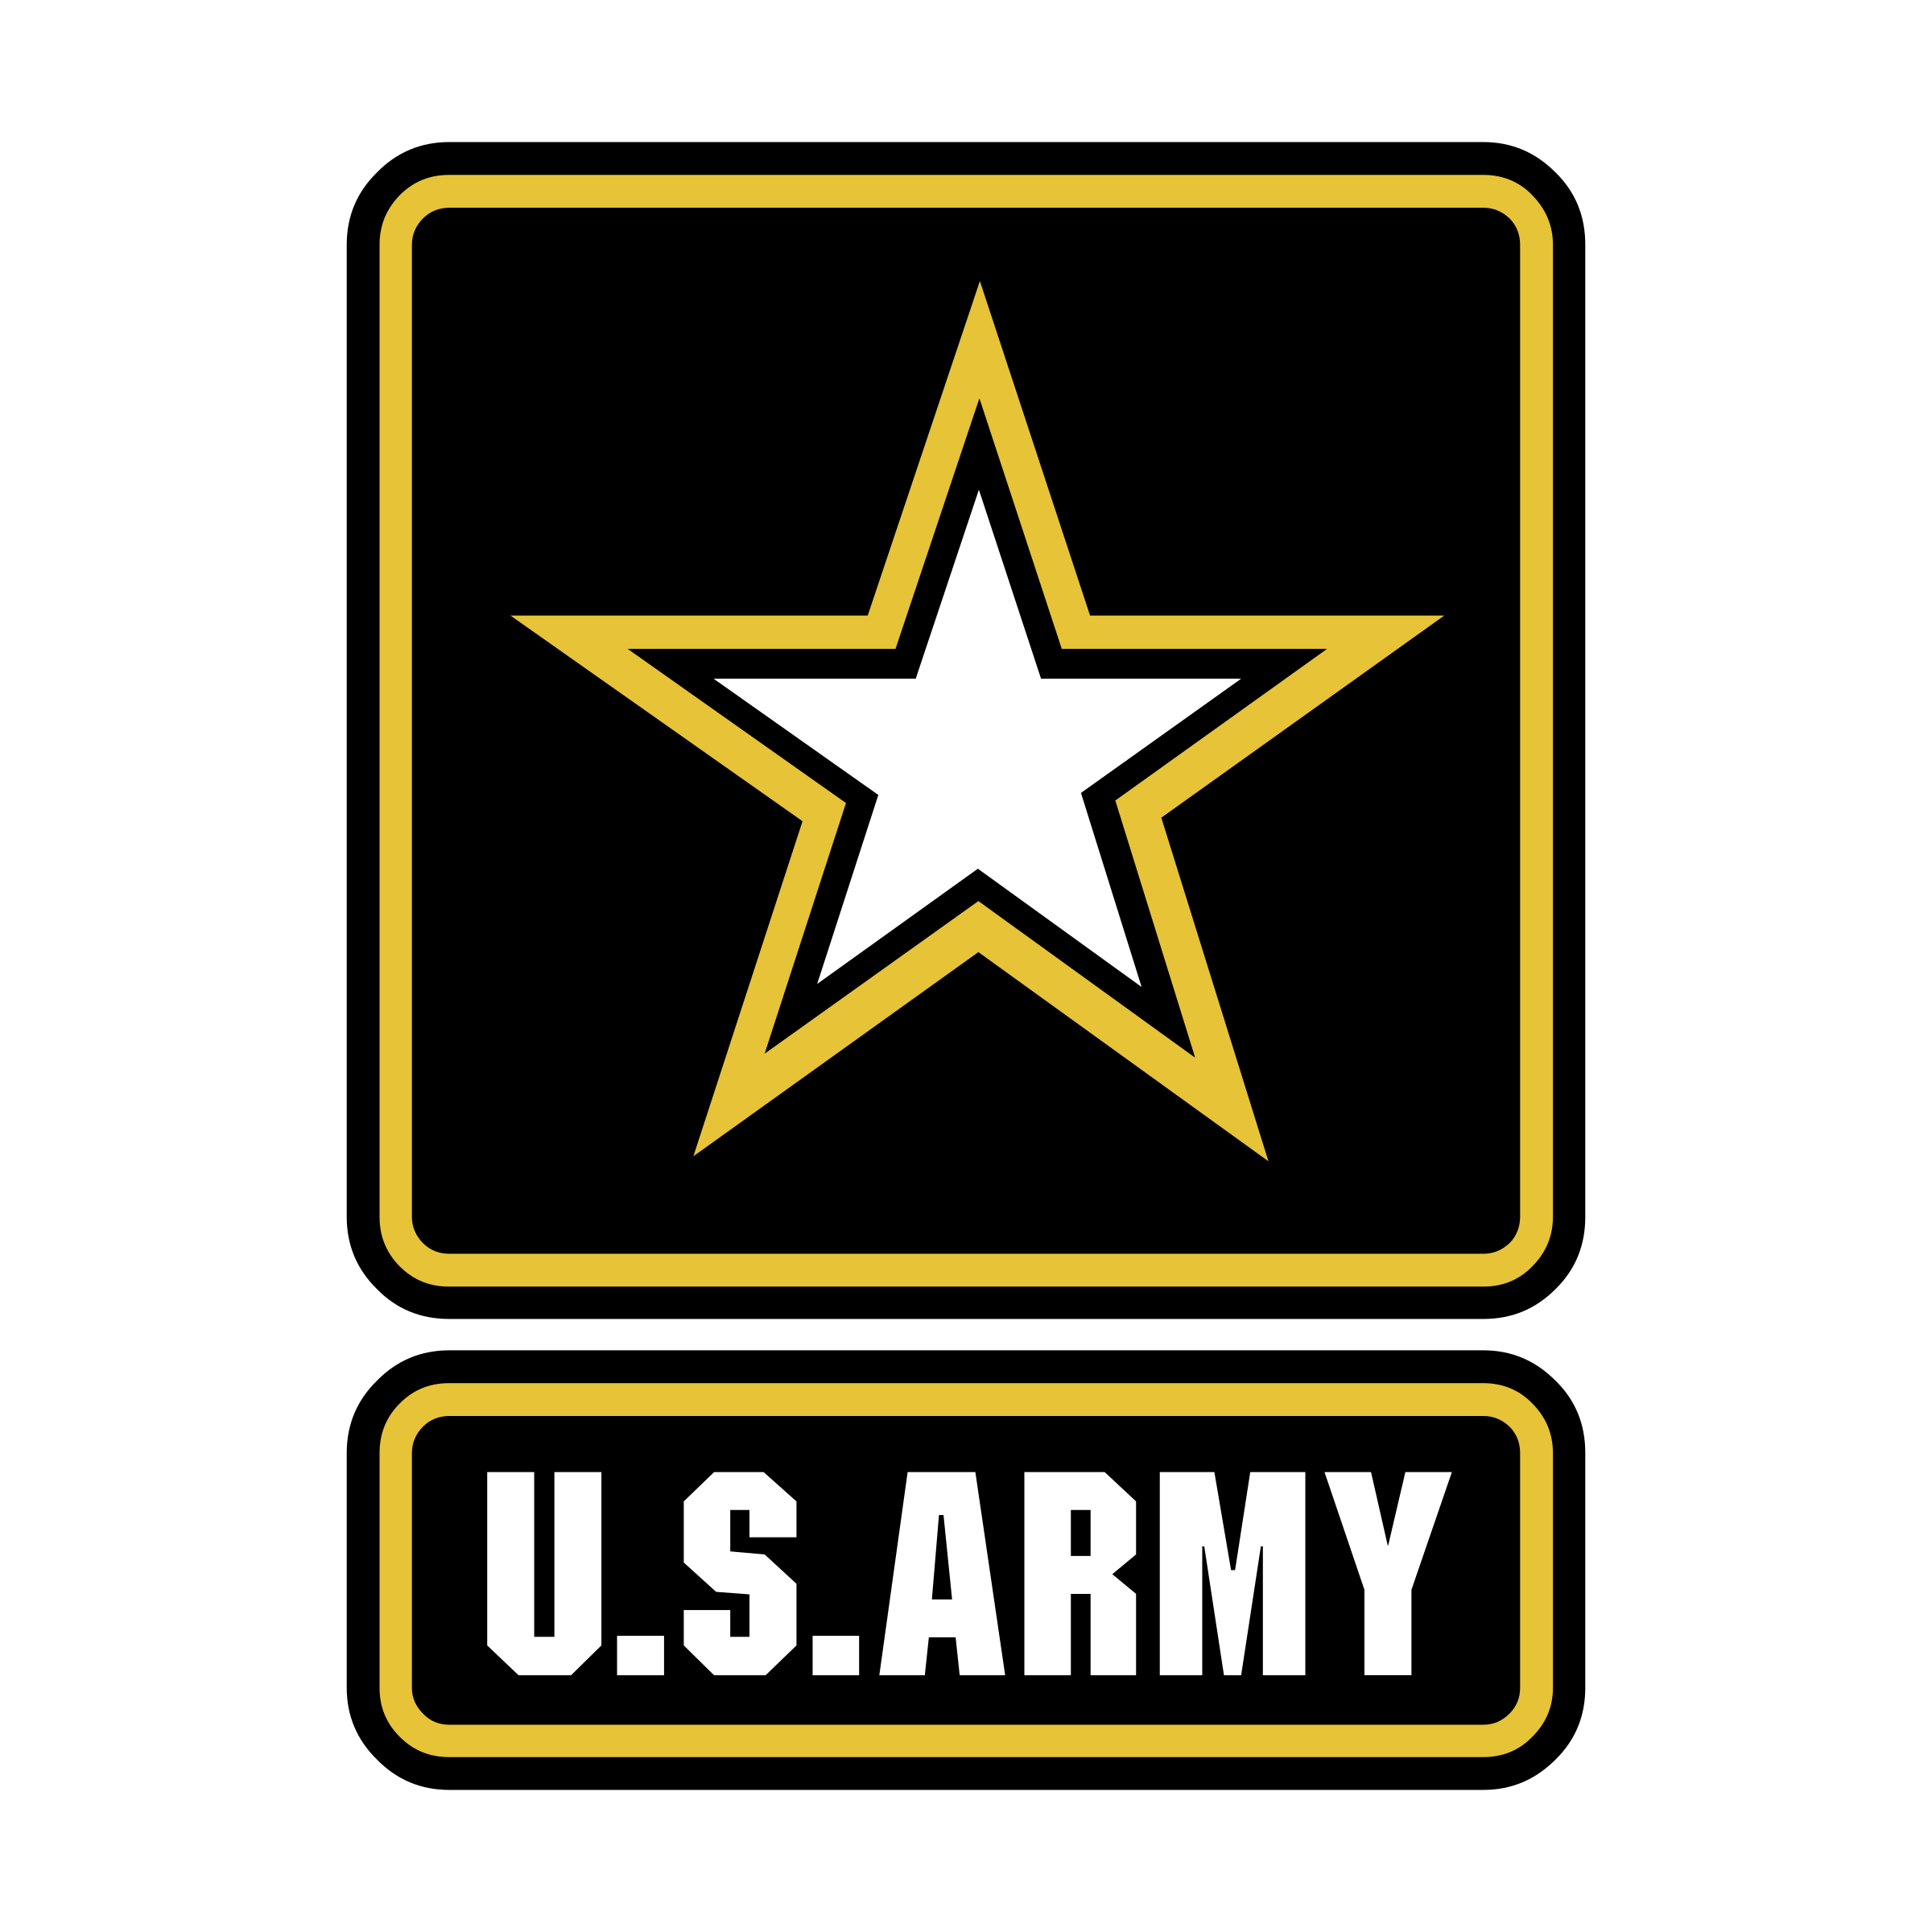 Us army logo png. Transparent svg vector freebie